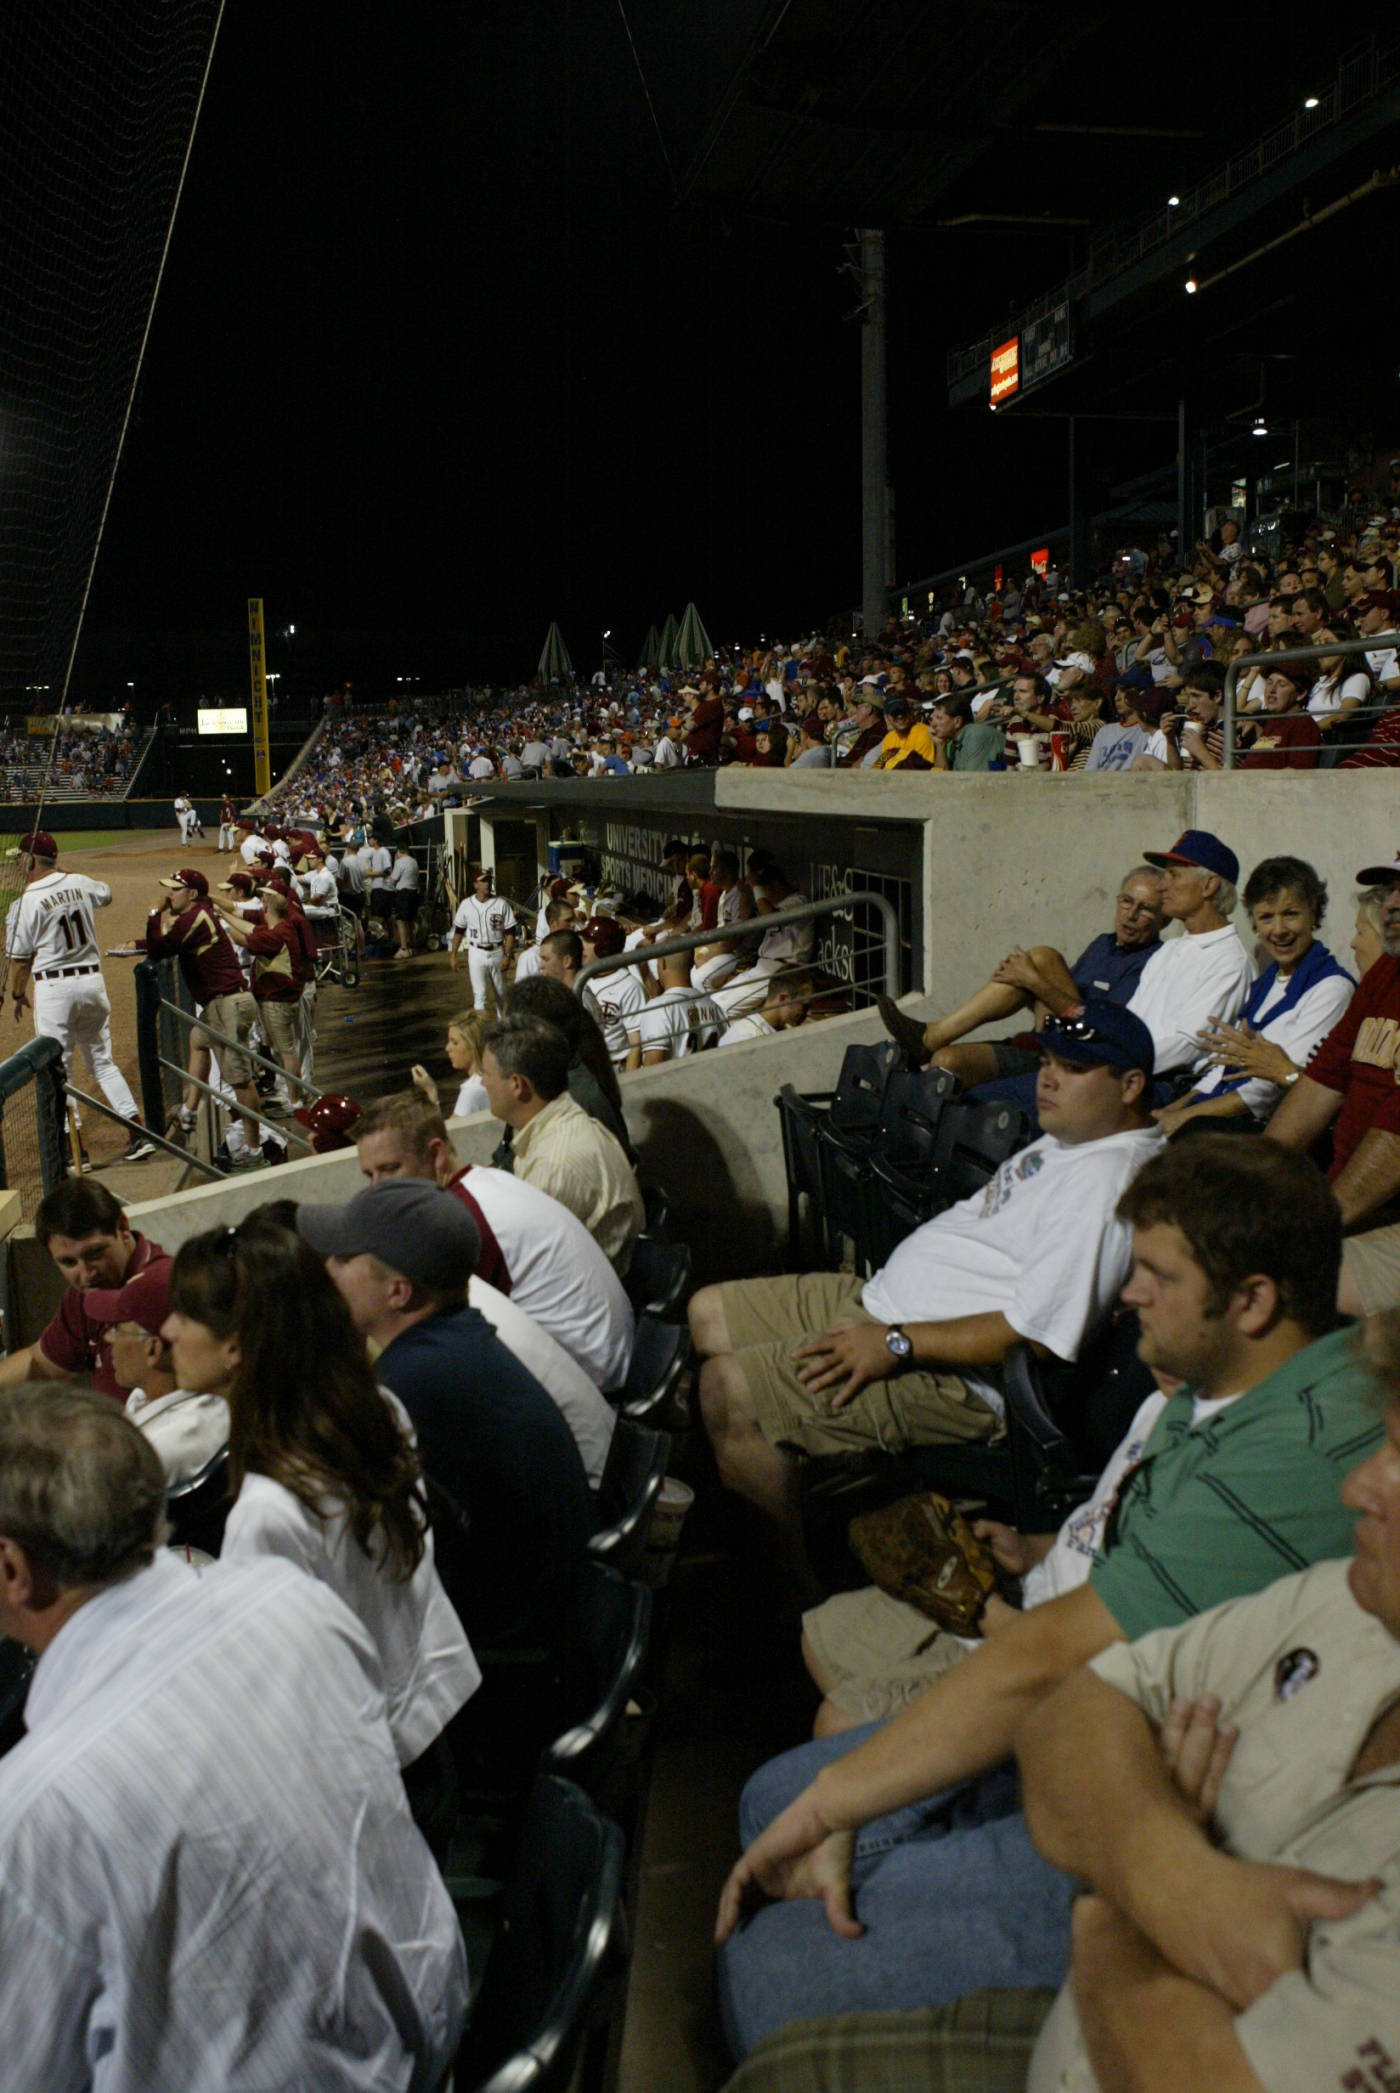 A look from the stands at the Baseball Grounds of Jacksonville